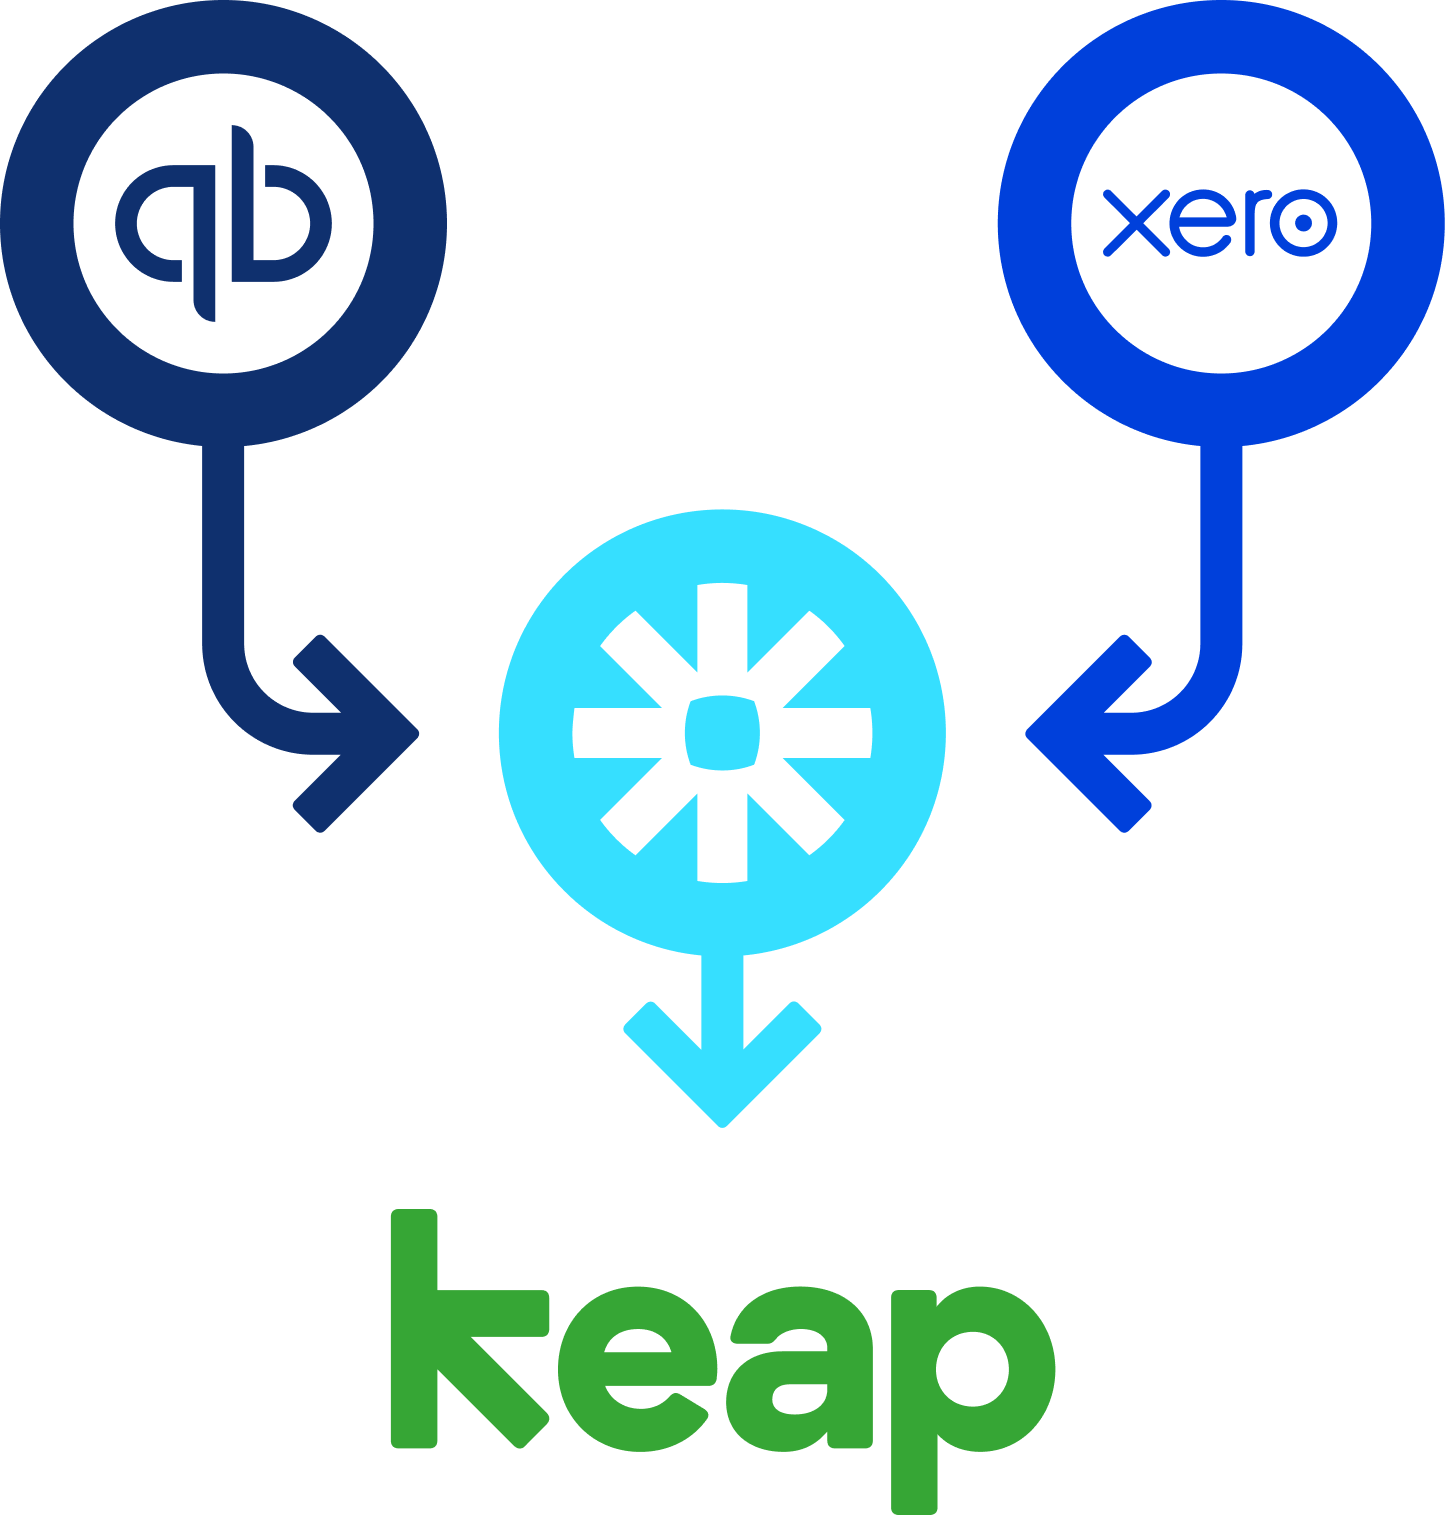 Keap (formerly Infusionsoft) offers an e-mail marketing and sales platform for small businesses, including products to manage customers, customer relationship management, marketing, and e-commerce.